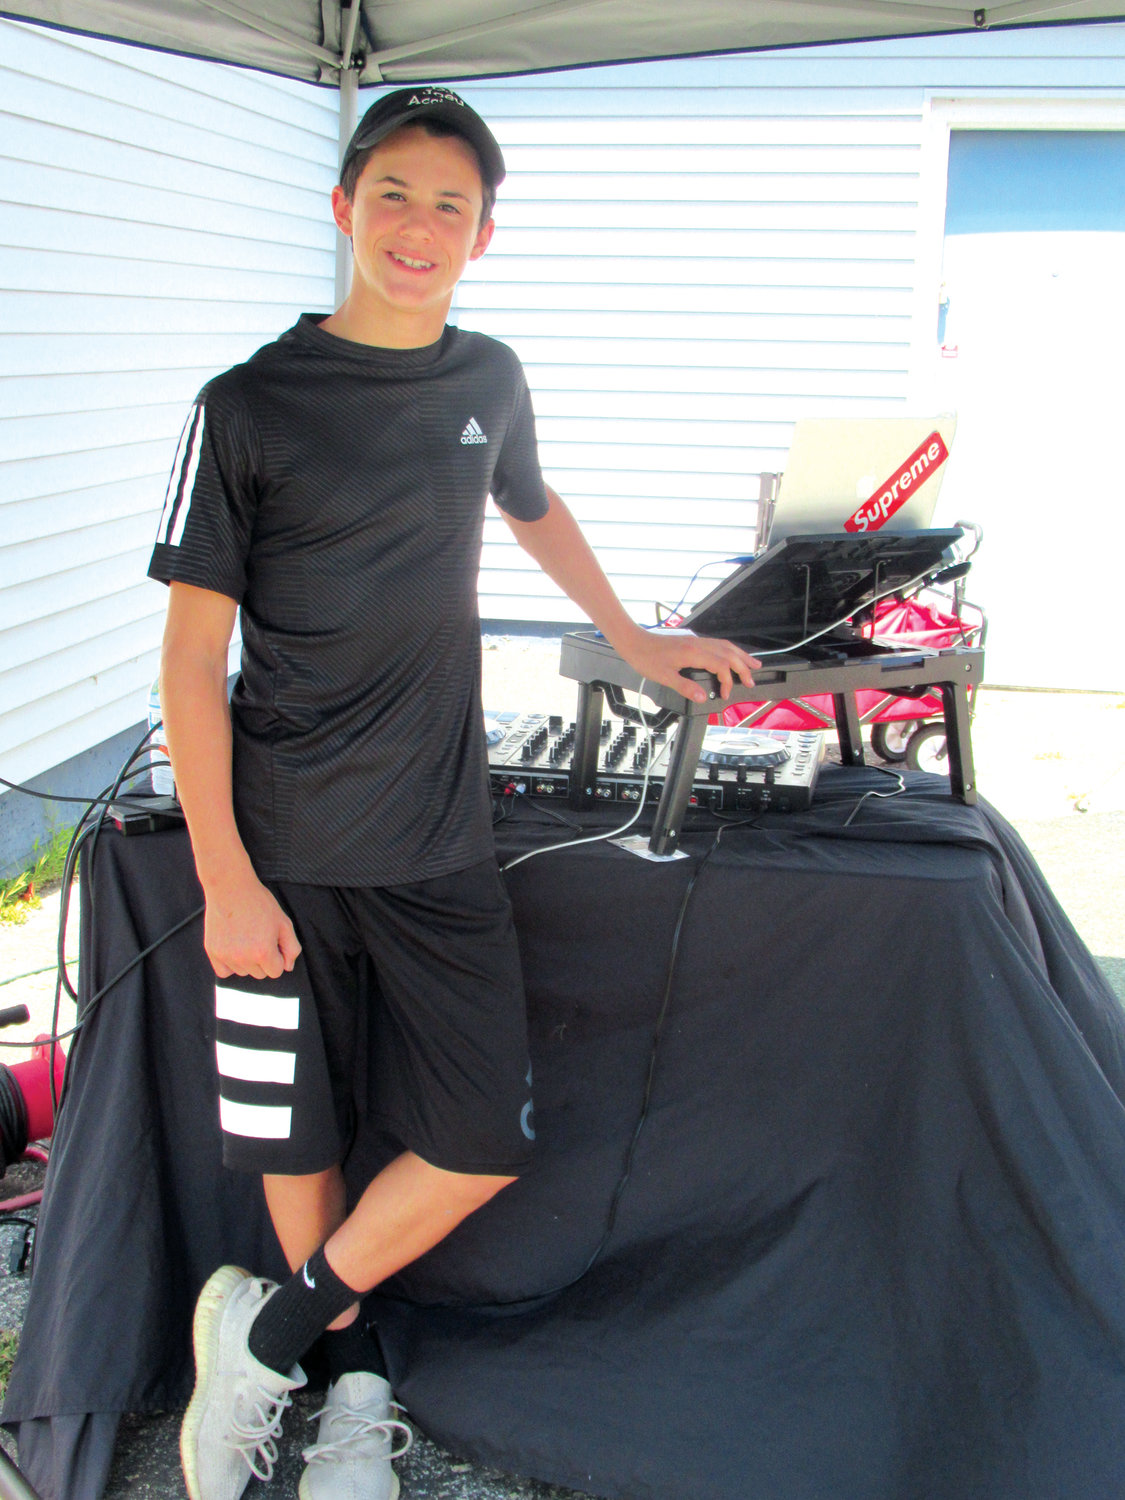 MUSIC MAN: Joey Acciardo Jr. helped make Sunday's Family Fun Day a super success by volunteering his time to play music during the gridiron group's first-ever event.